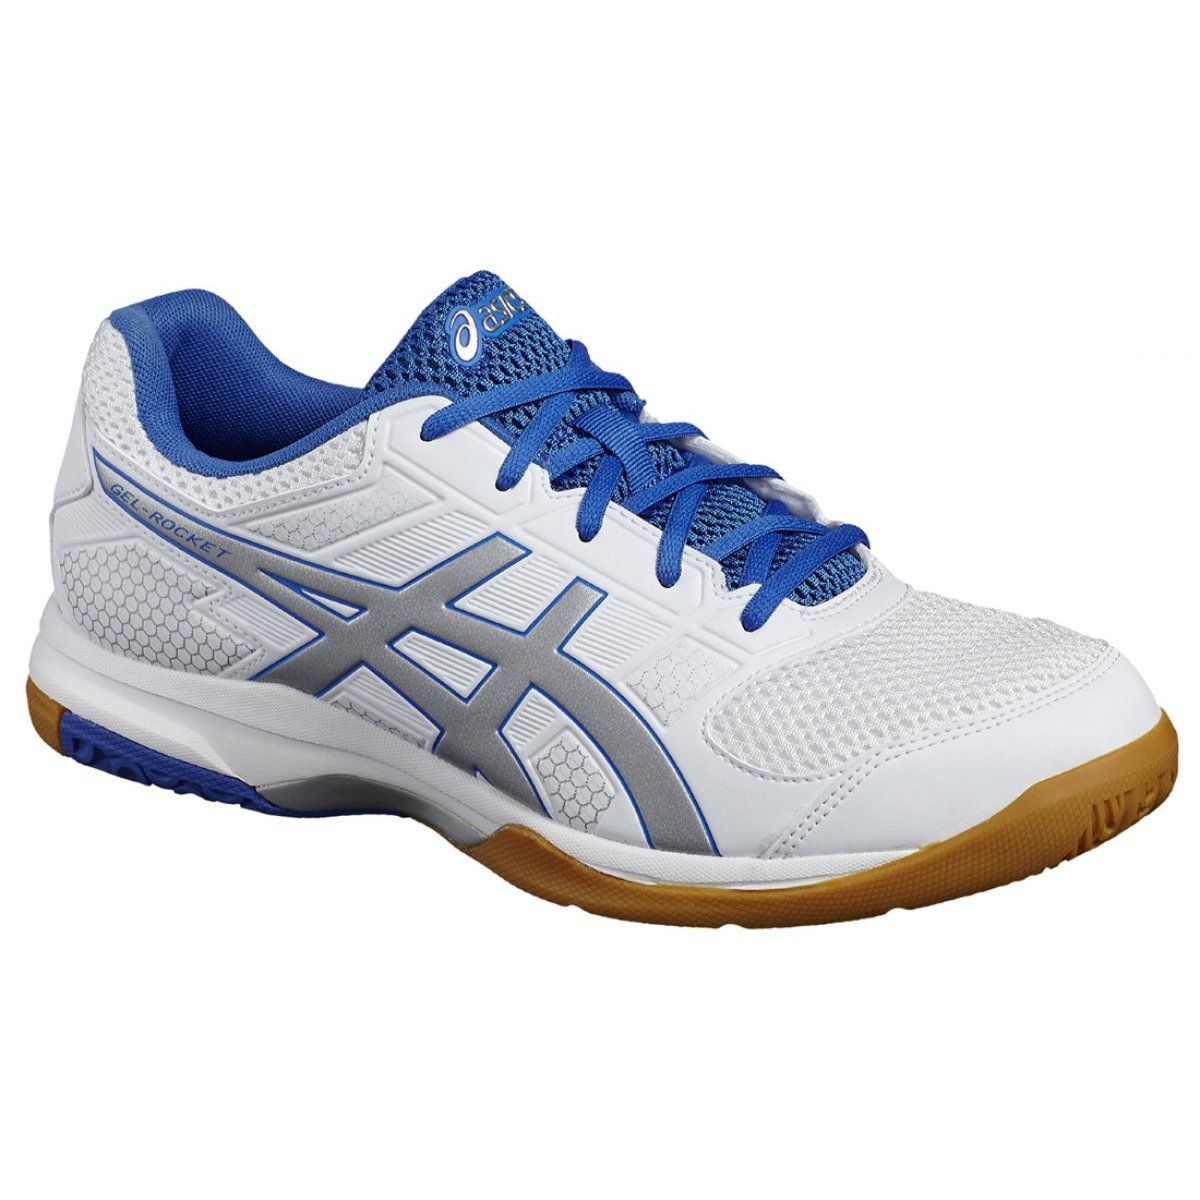 Asics Gel Rocket 8 M B706y 0193 Volleyball Shoes White White Volleyball Shoes Asics Shoes